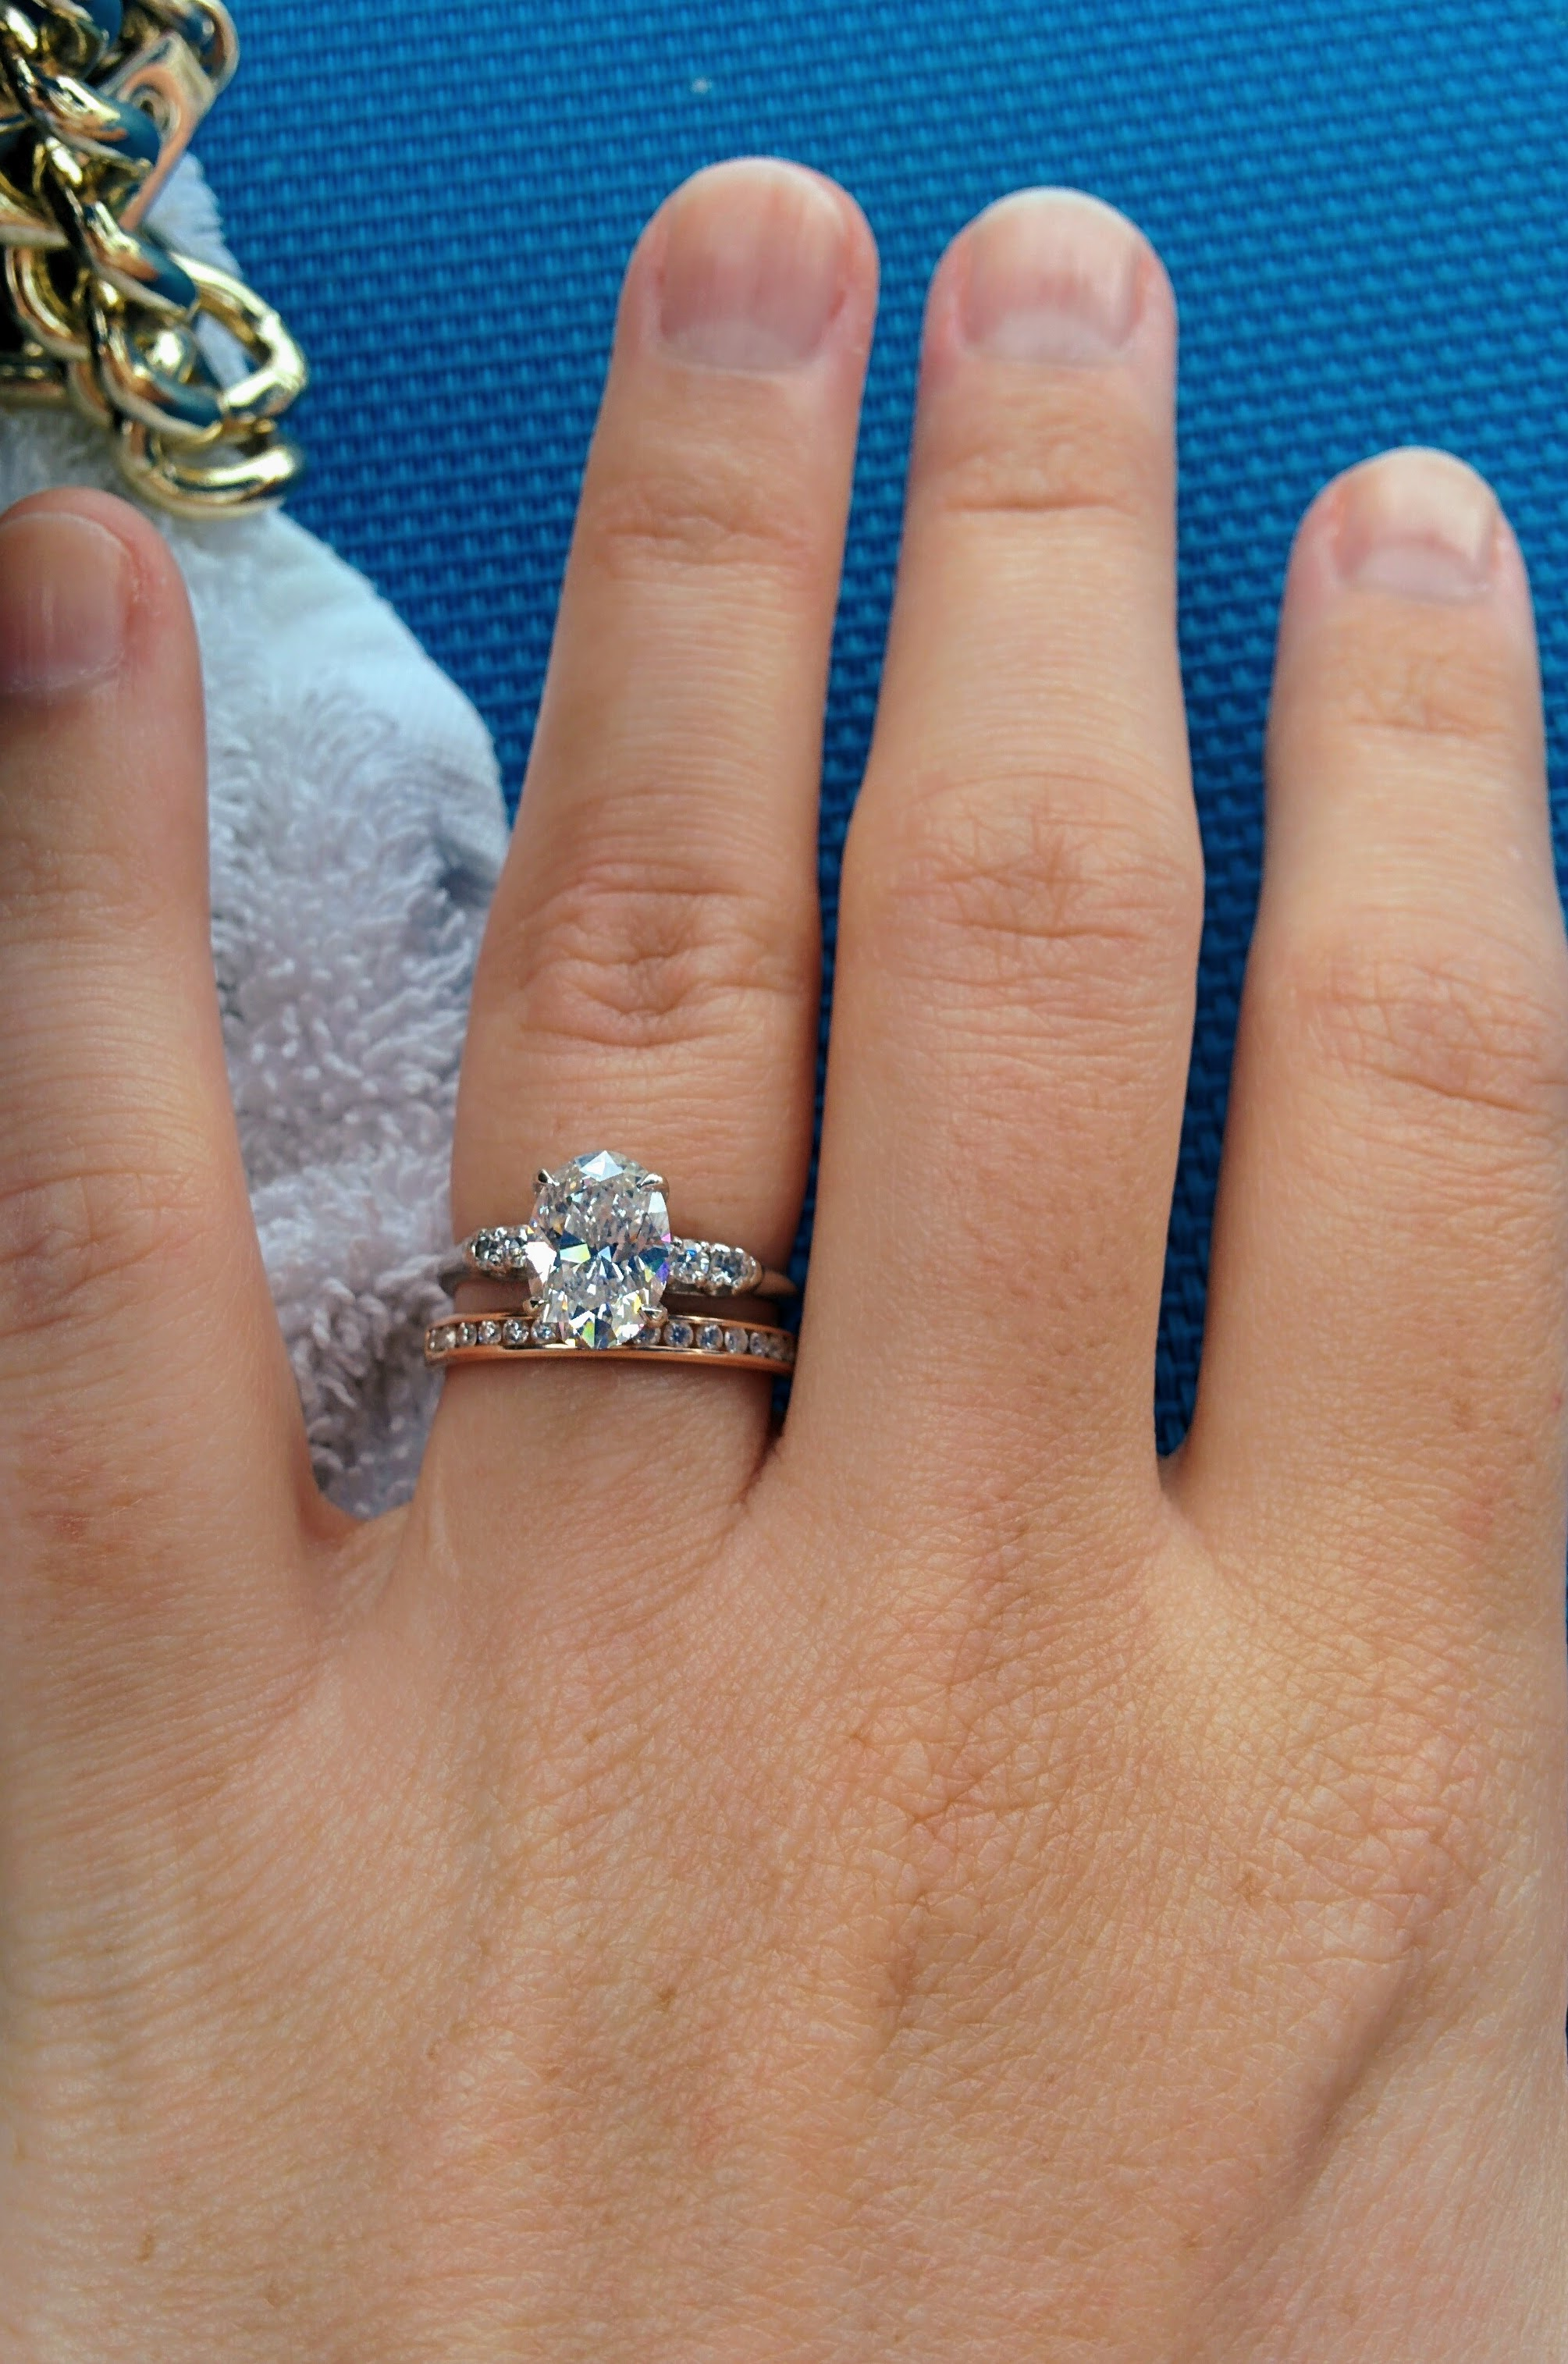 Different color metal for engagement ring versus wedding band